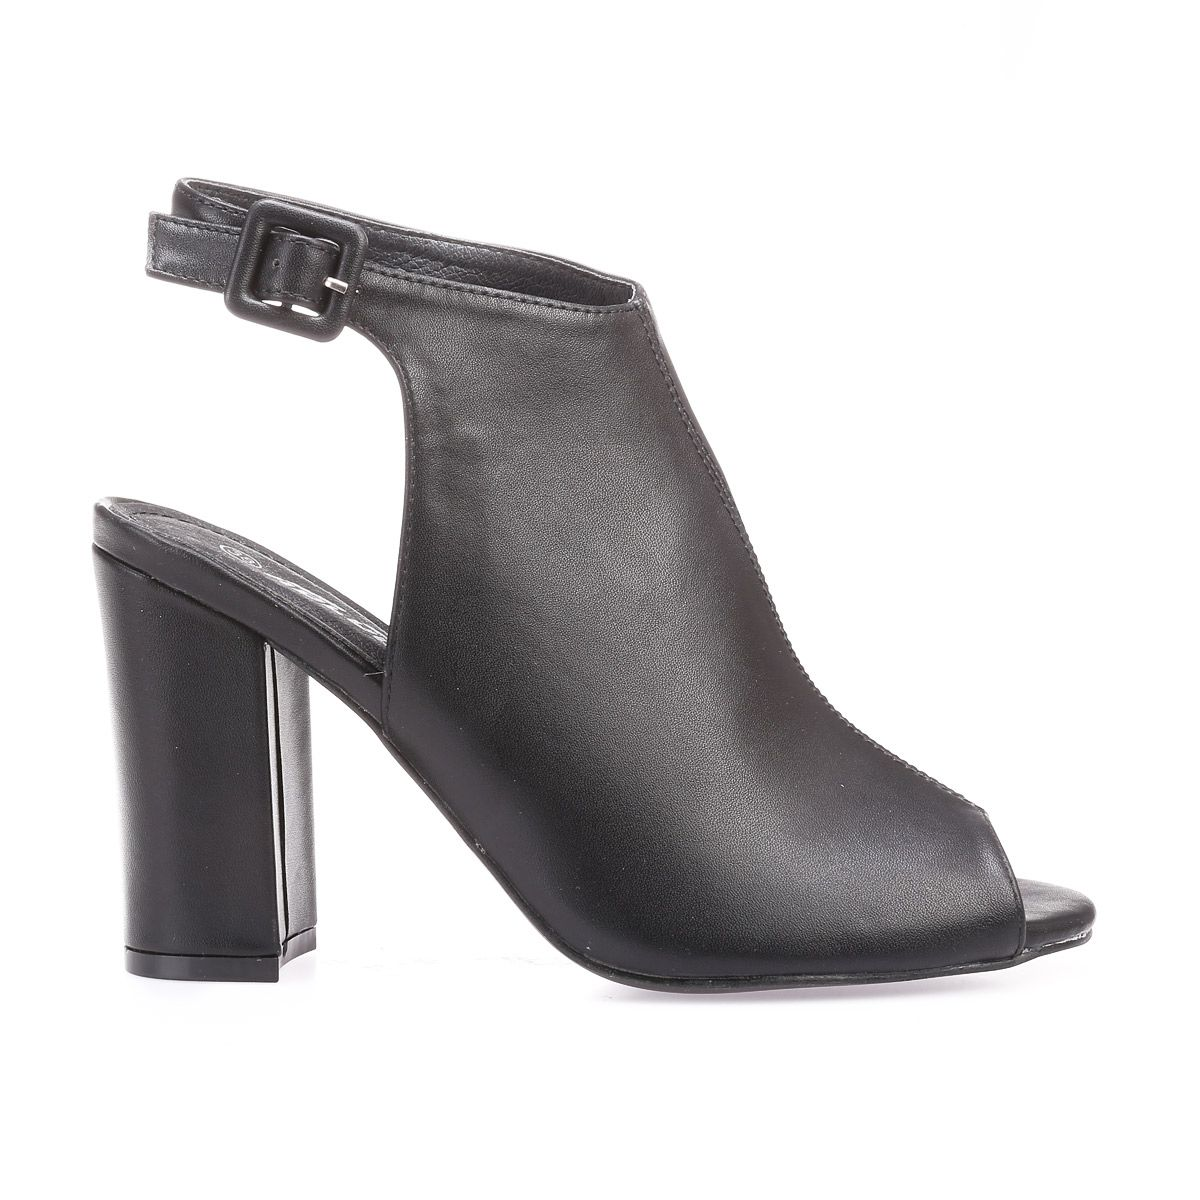 Bottines peep-toes en simili cuir noir